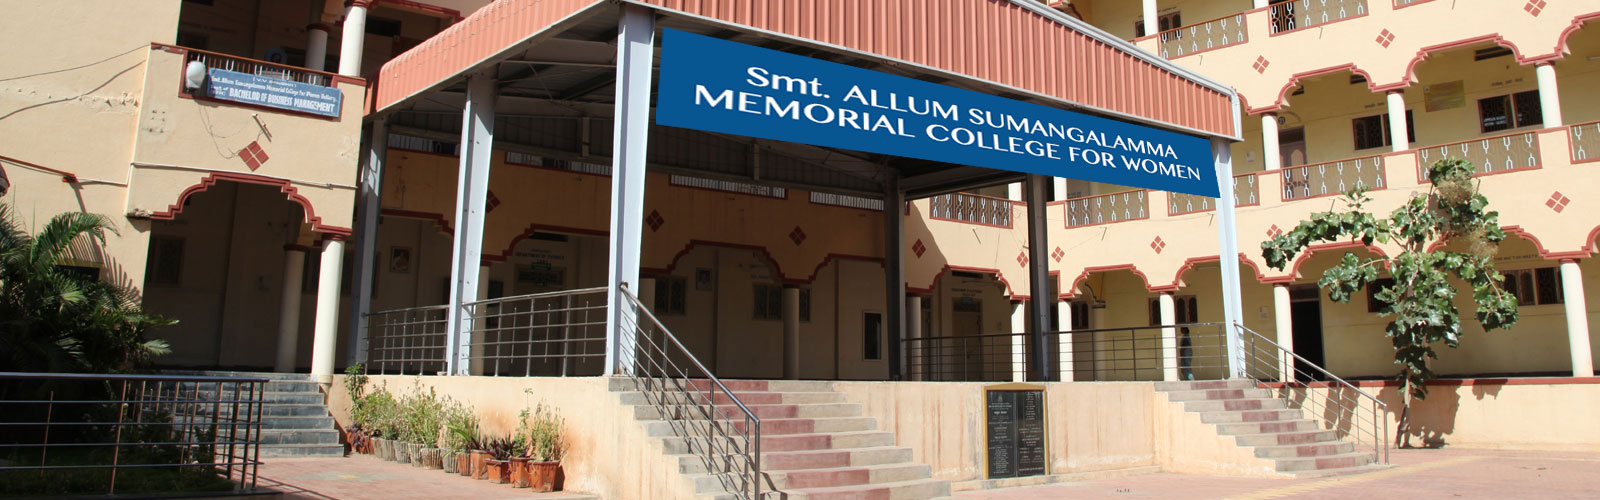 Welcome to Smt. Allum Sumangalamma Memorial College for Women